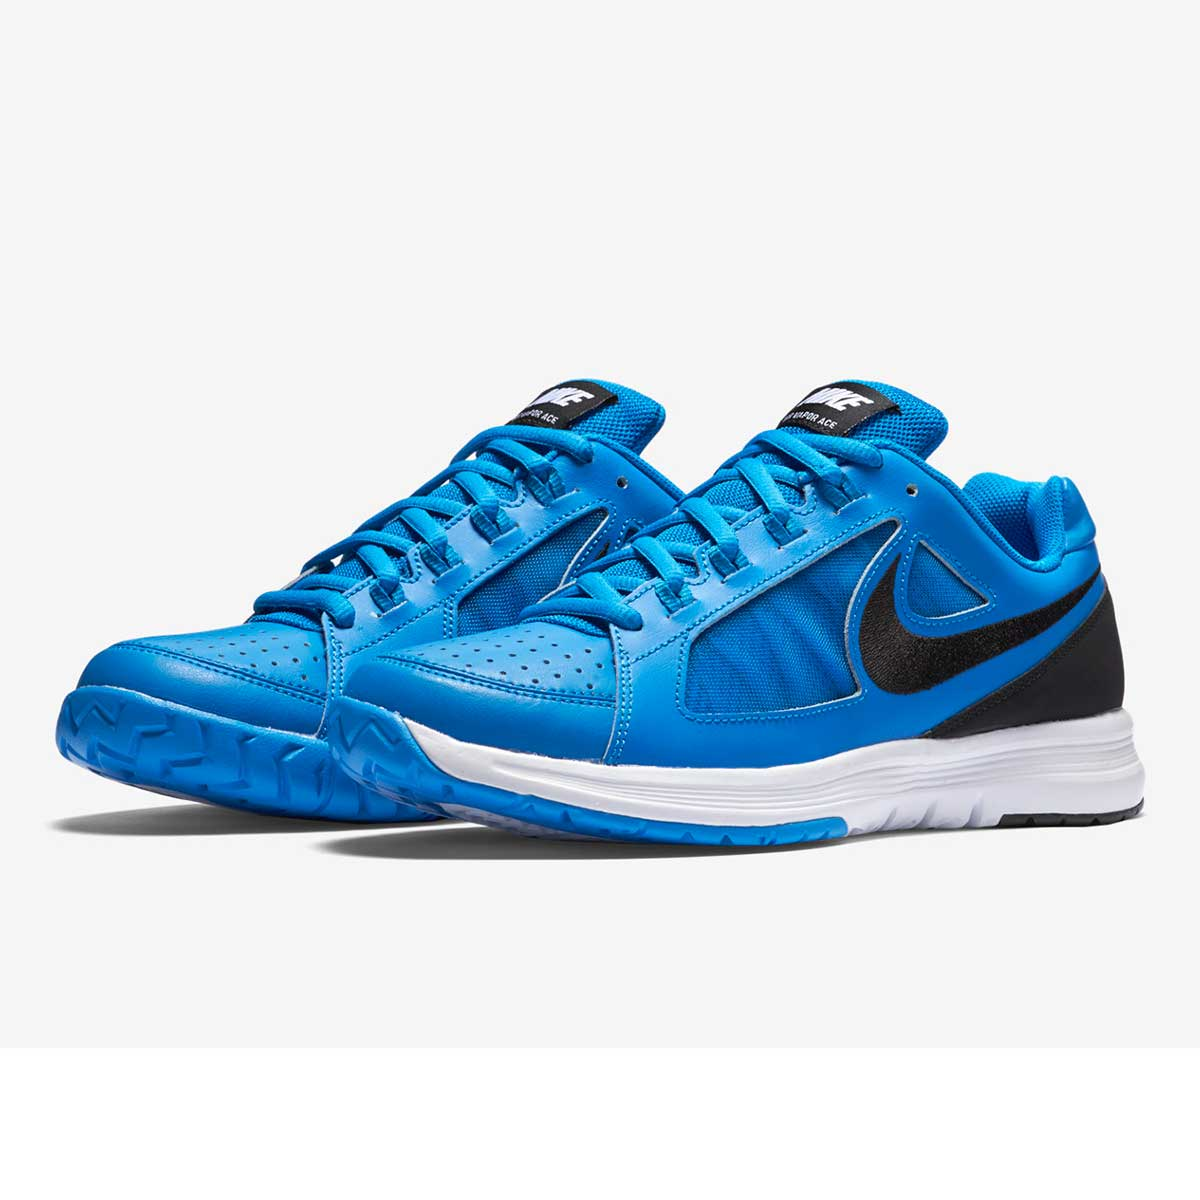 big sale 0cf23 bb7de Buy Nike Air Vapor Ace Tennis Shoes (Blue Black White) Online